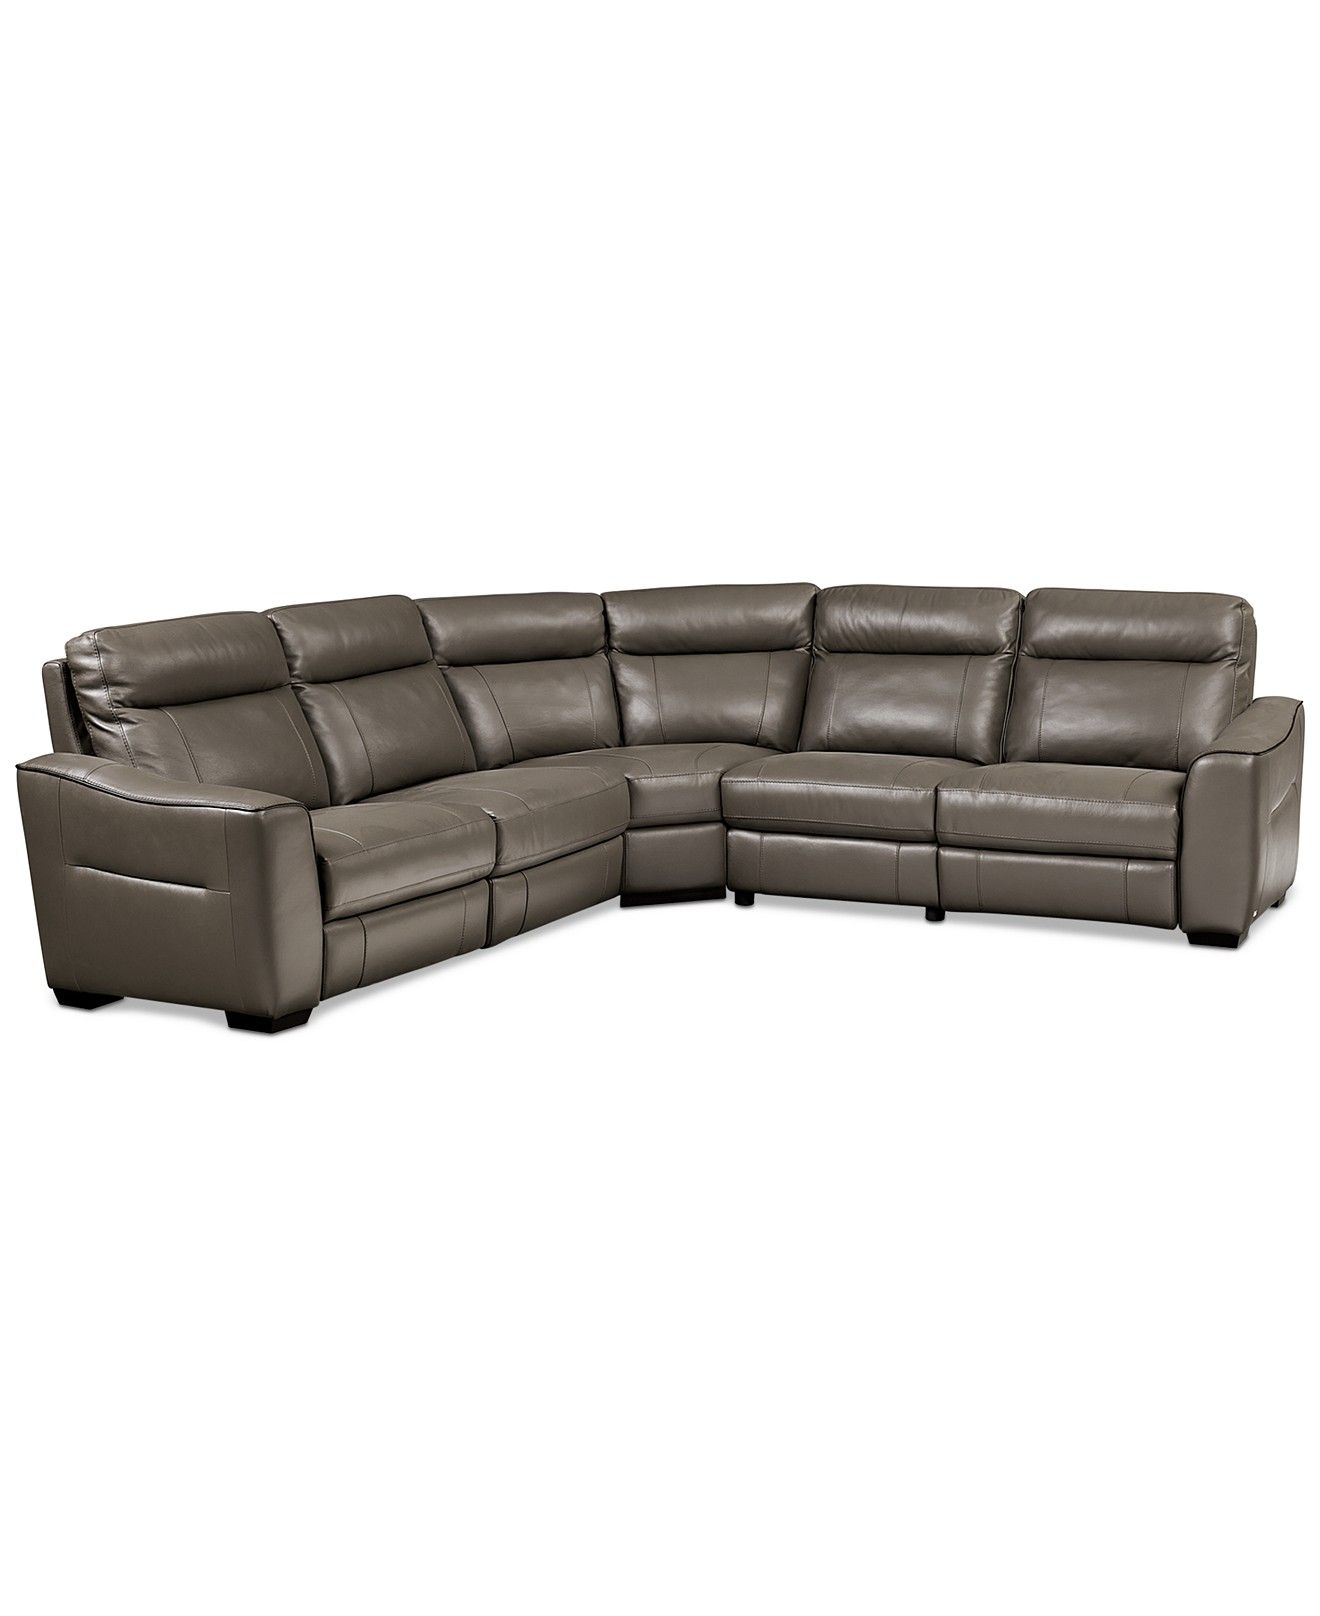 Destin Leather 5piece Sectional Sofa With 3 Power Recliners  Sectional  Sofas  Furniture